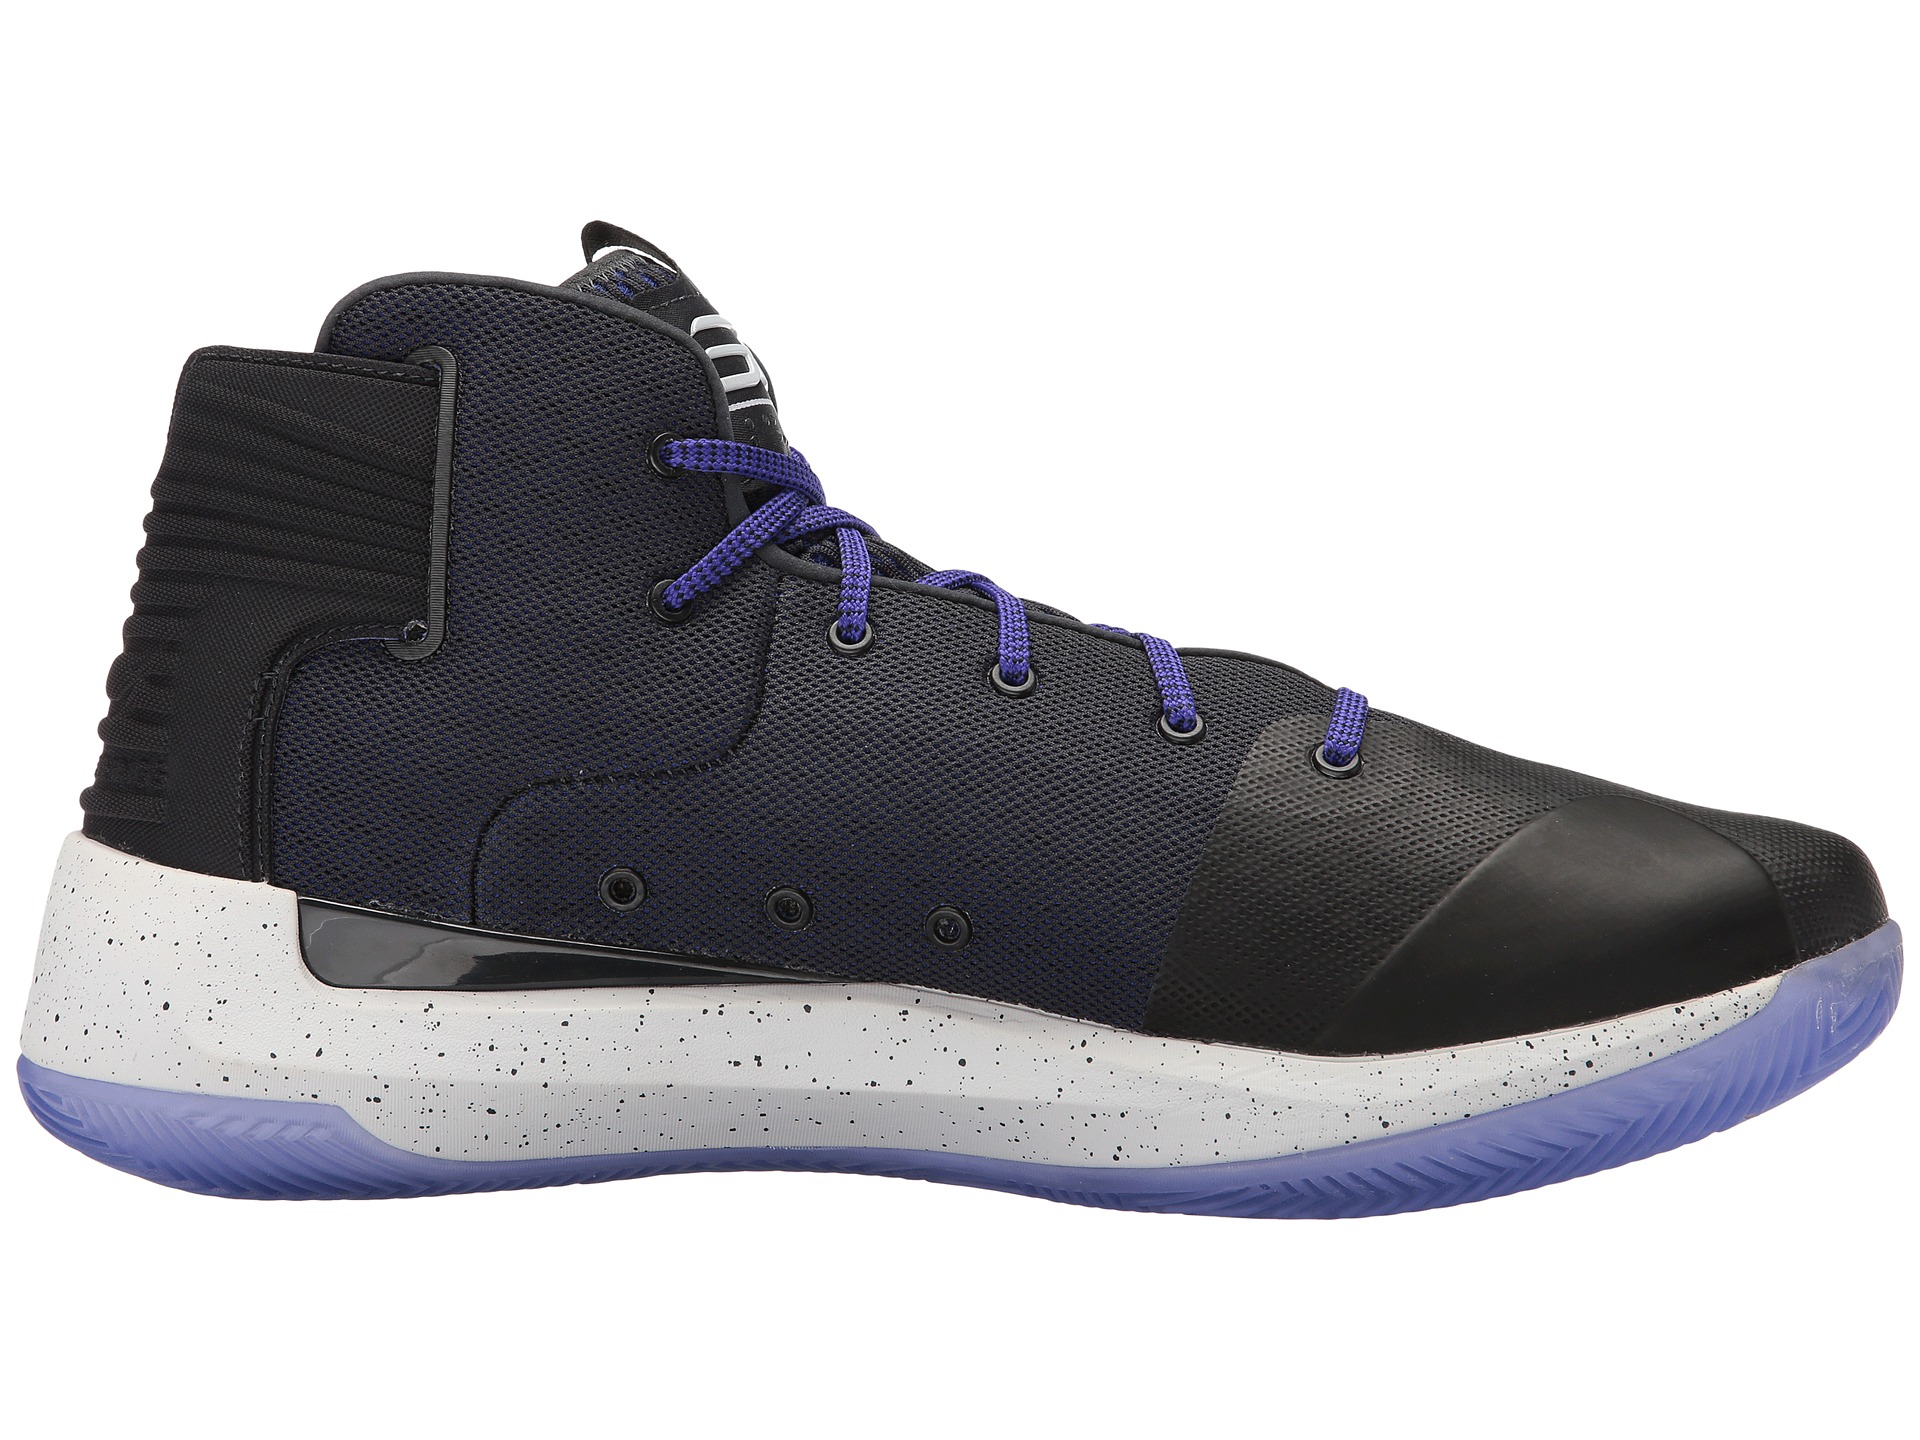 Under Armour Women S Basketball Shoes Wear